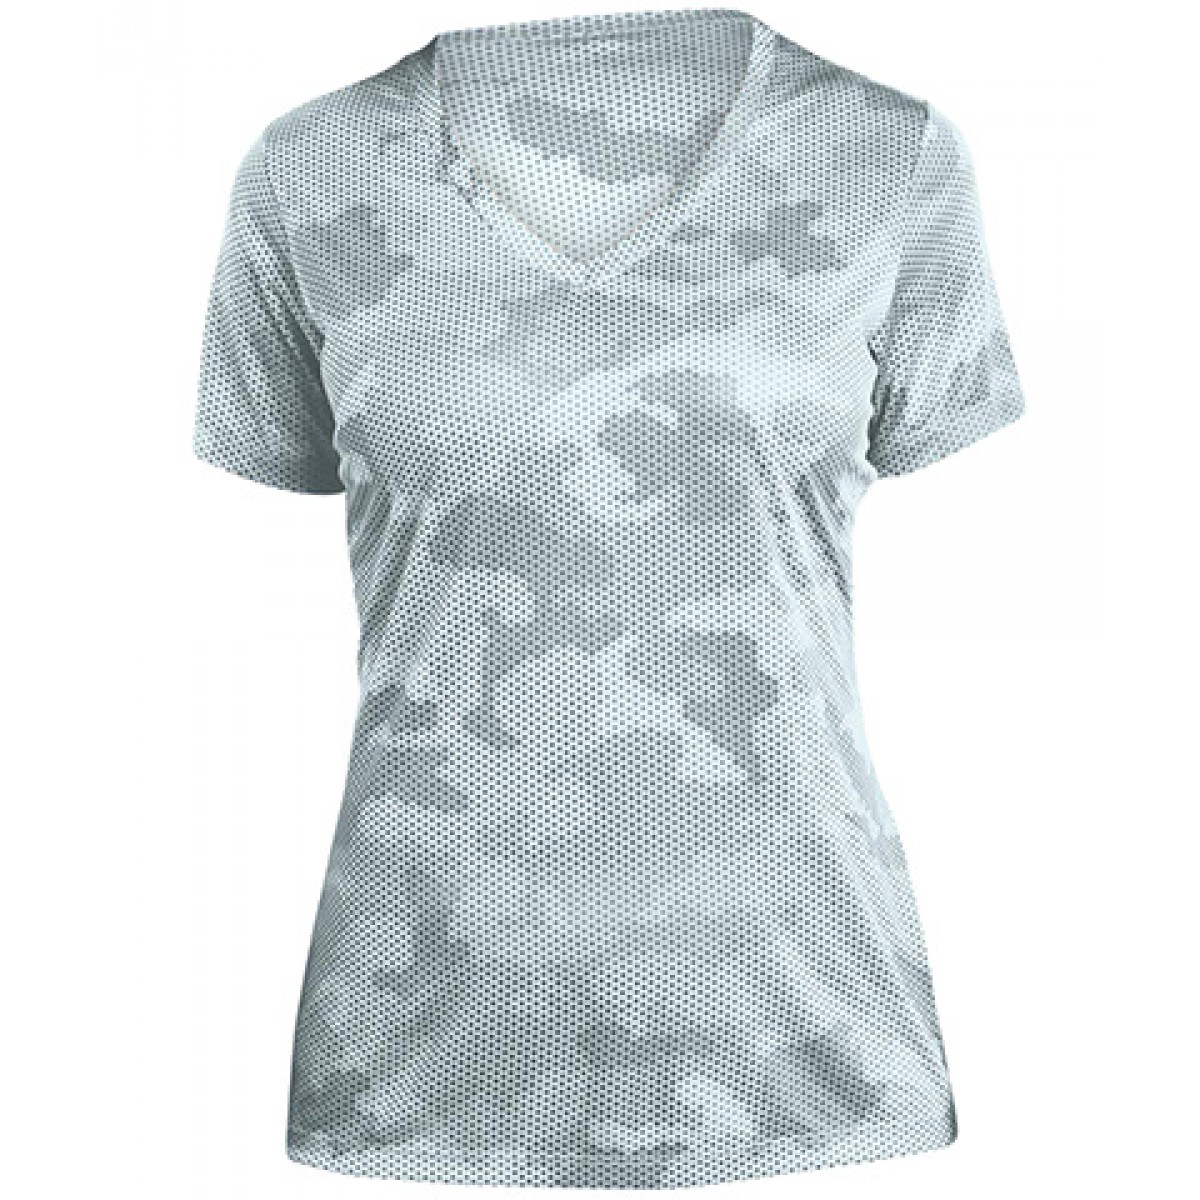 Ladies CamoHex V-Neck Tee-White-XS